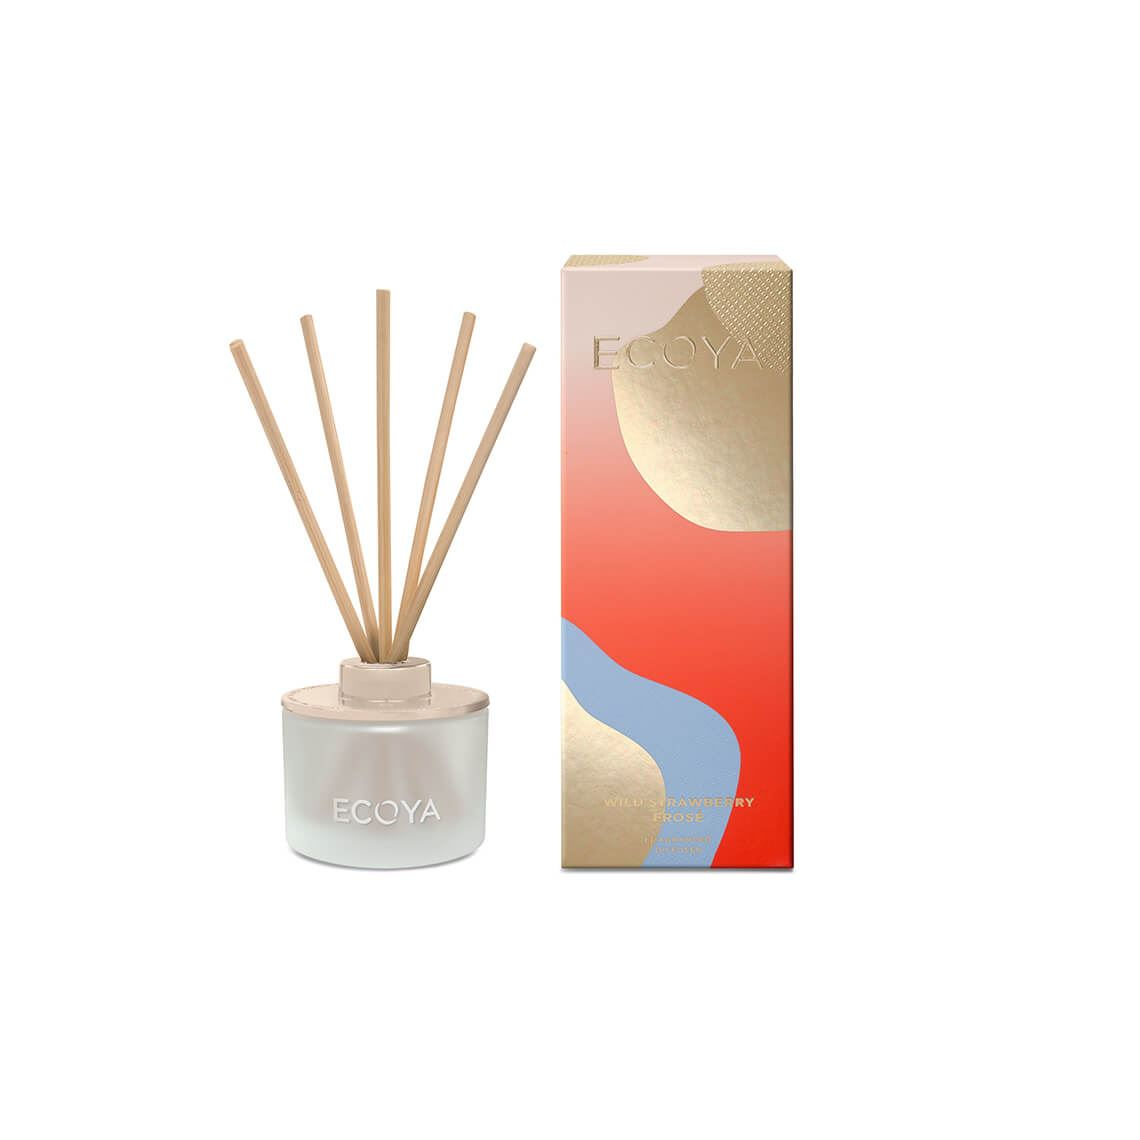 Ecoya Christmas Mini Diffuser L Size W 6cm x D 6cm x H 17cm in Wild Strawberry Frose Freedom